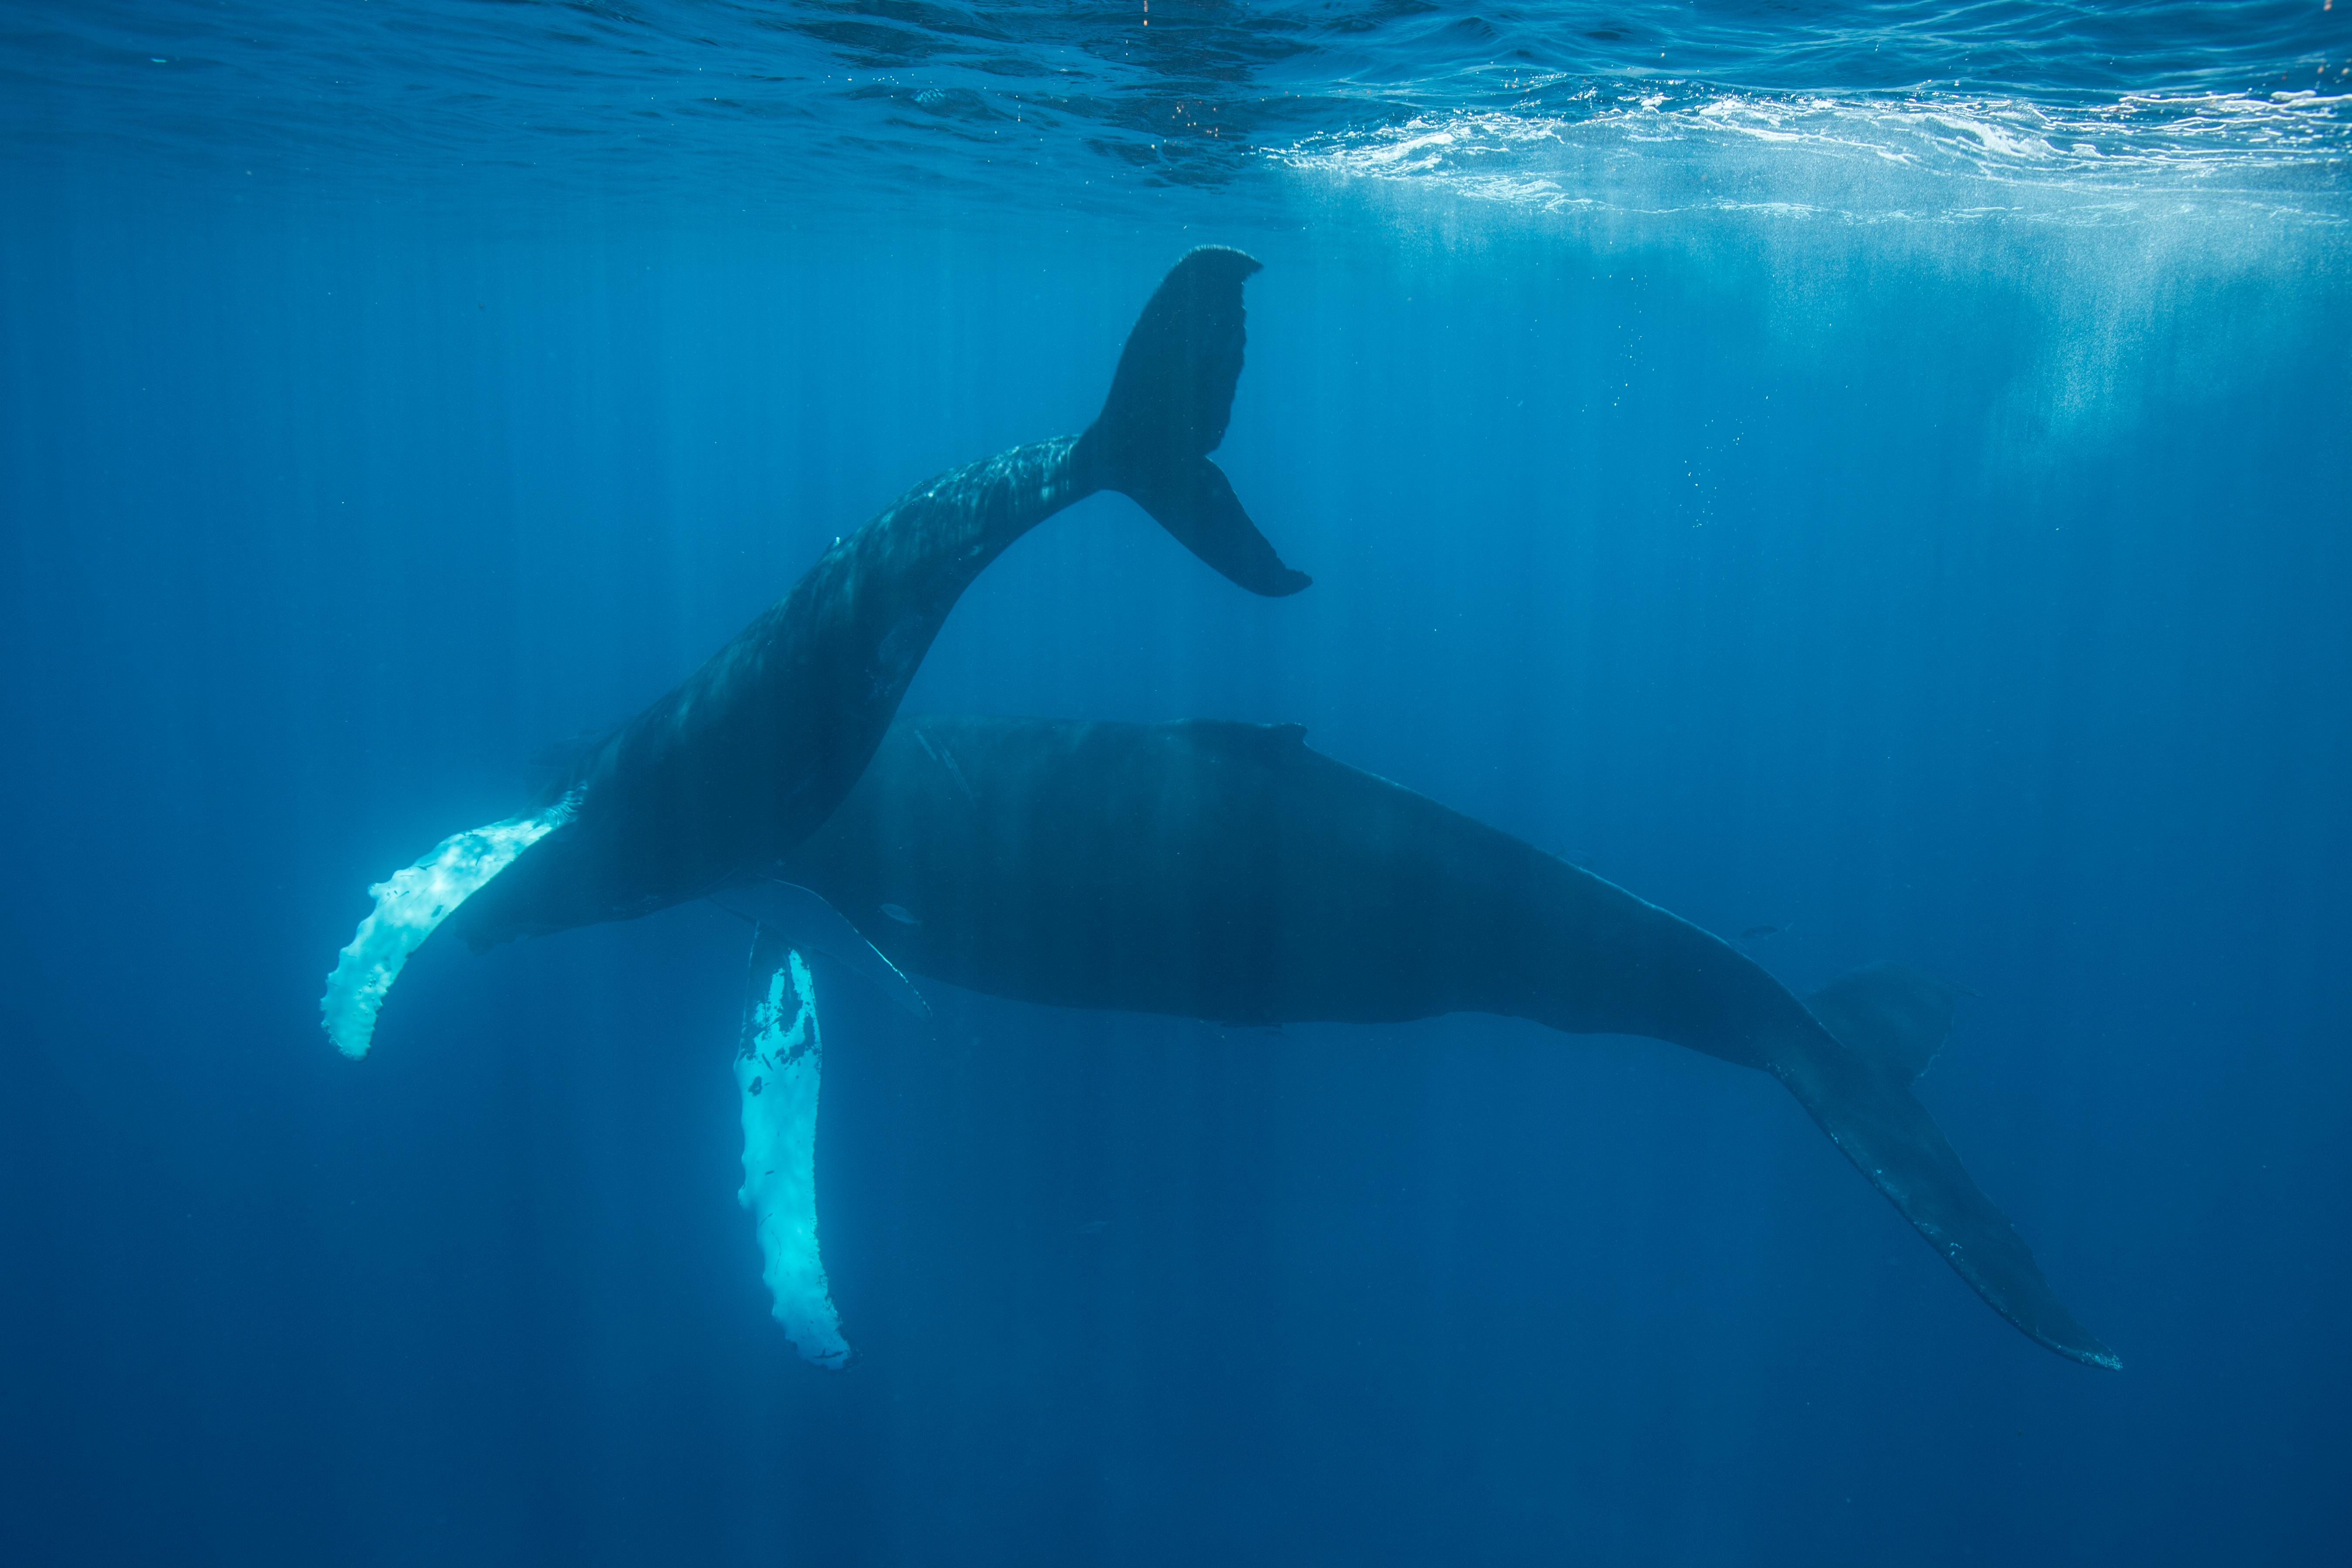 Mother and Calf Whale